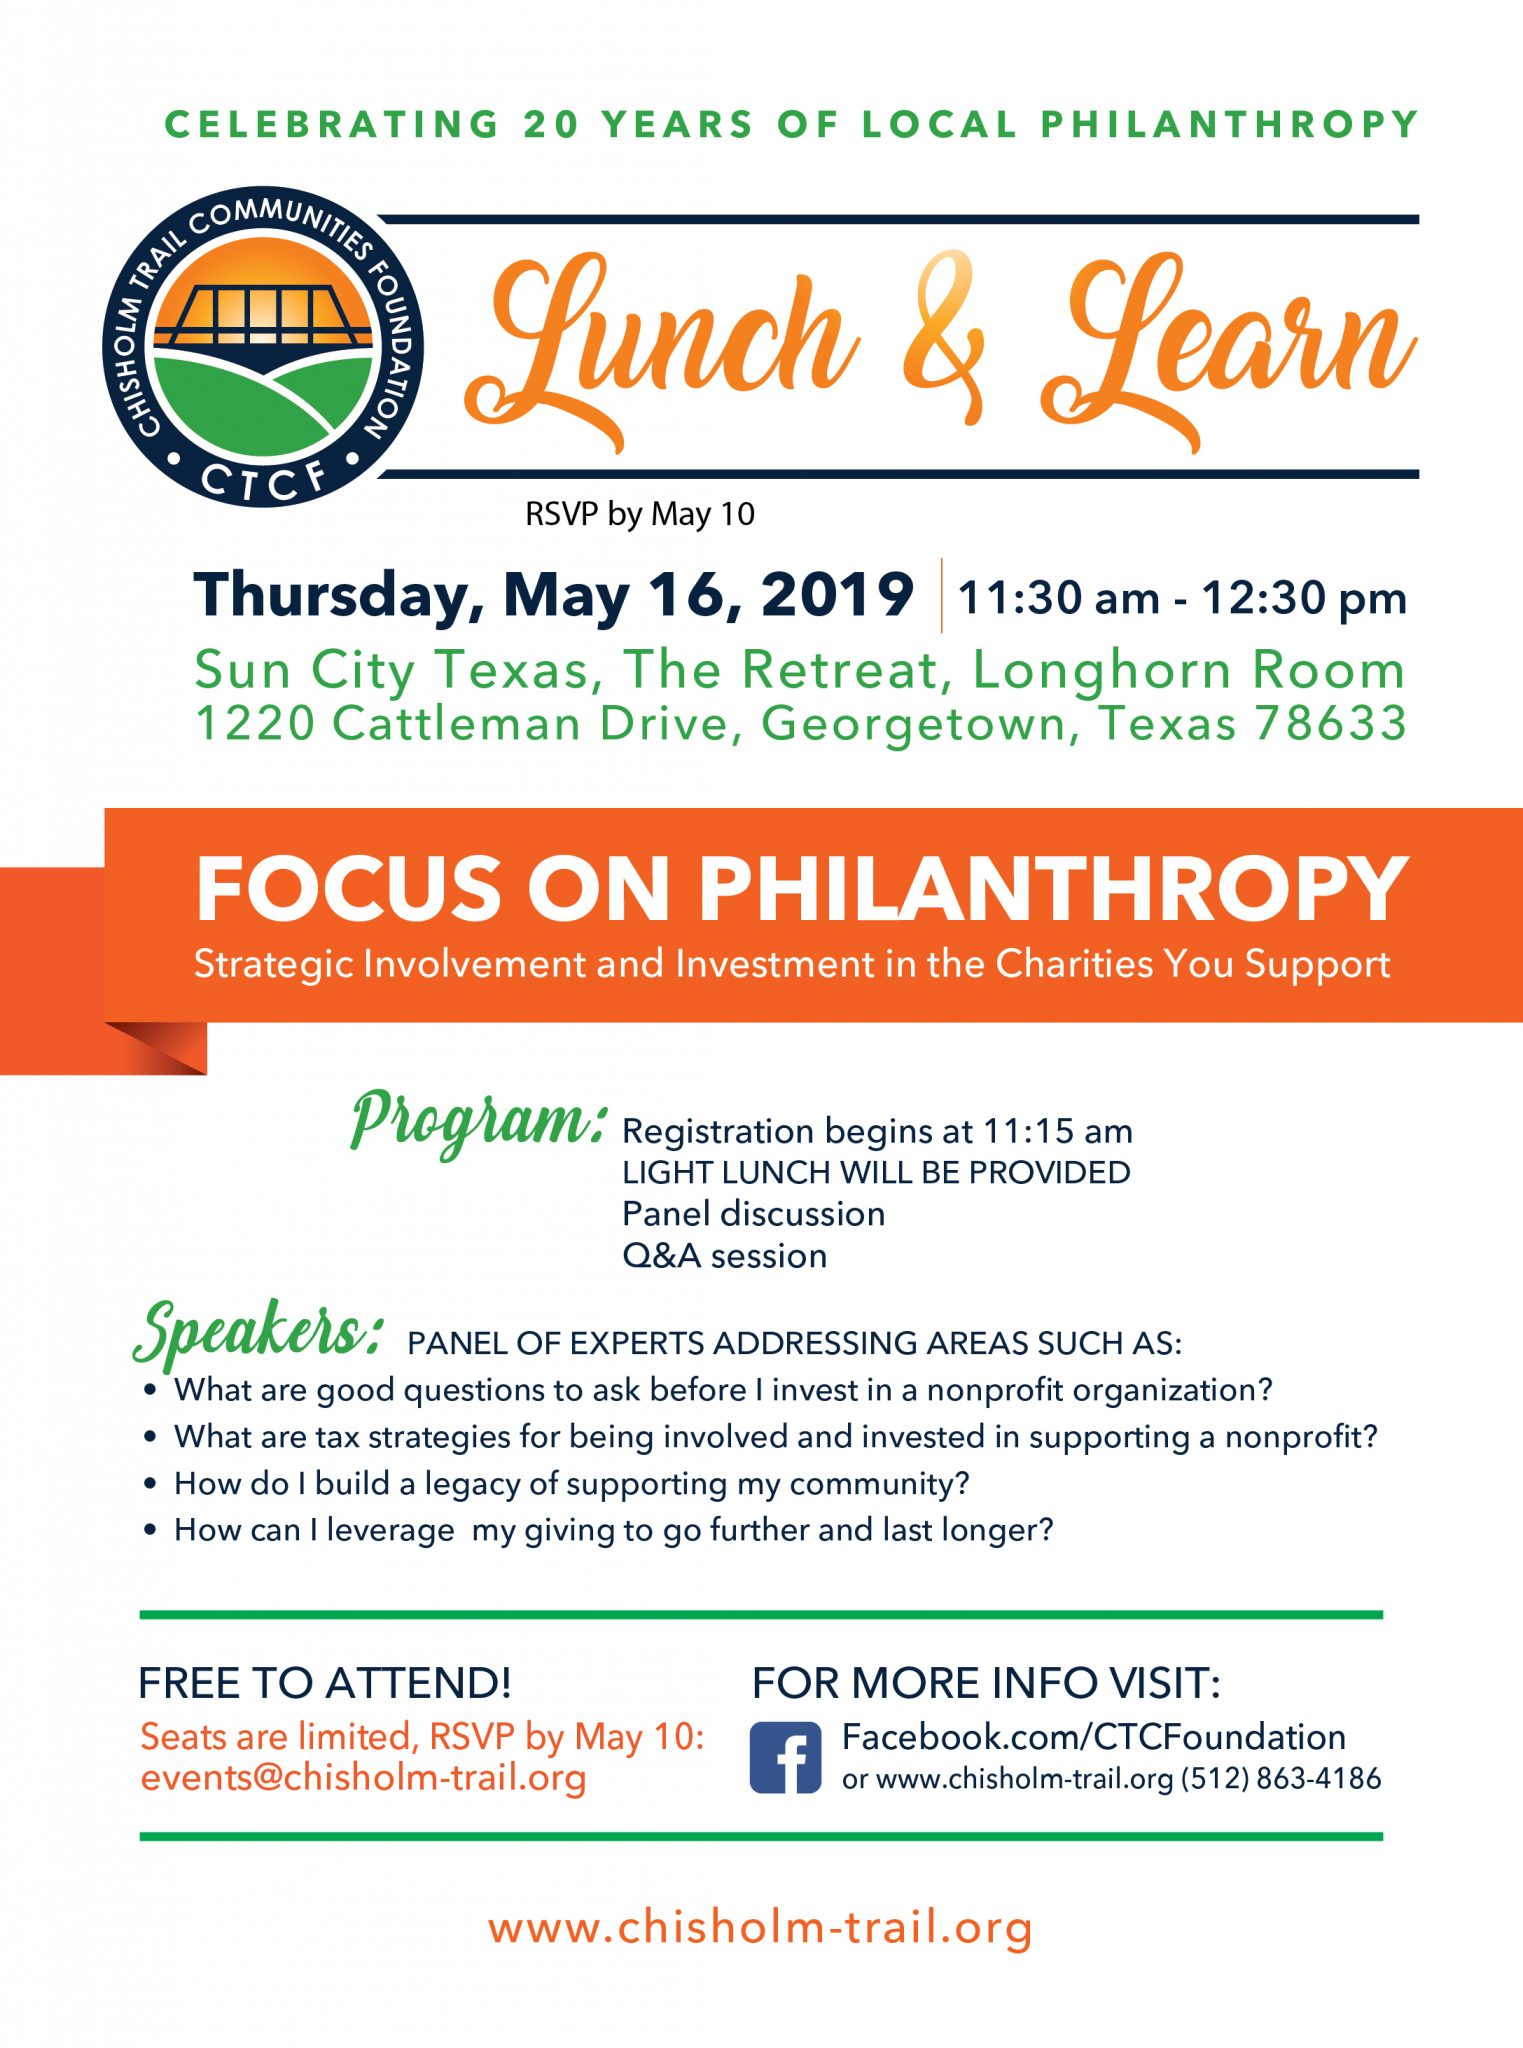 Lunch & Learn flyer - RSVP by May 10